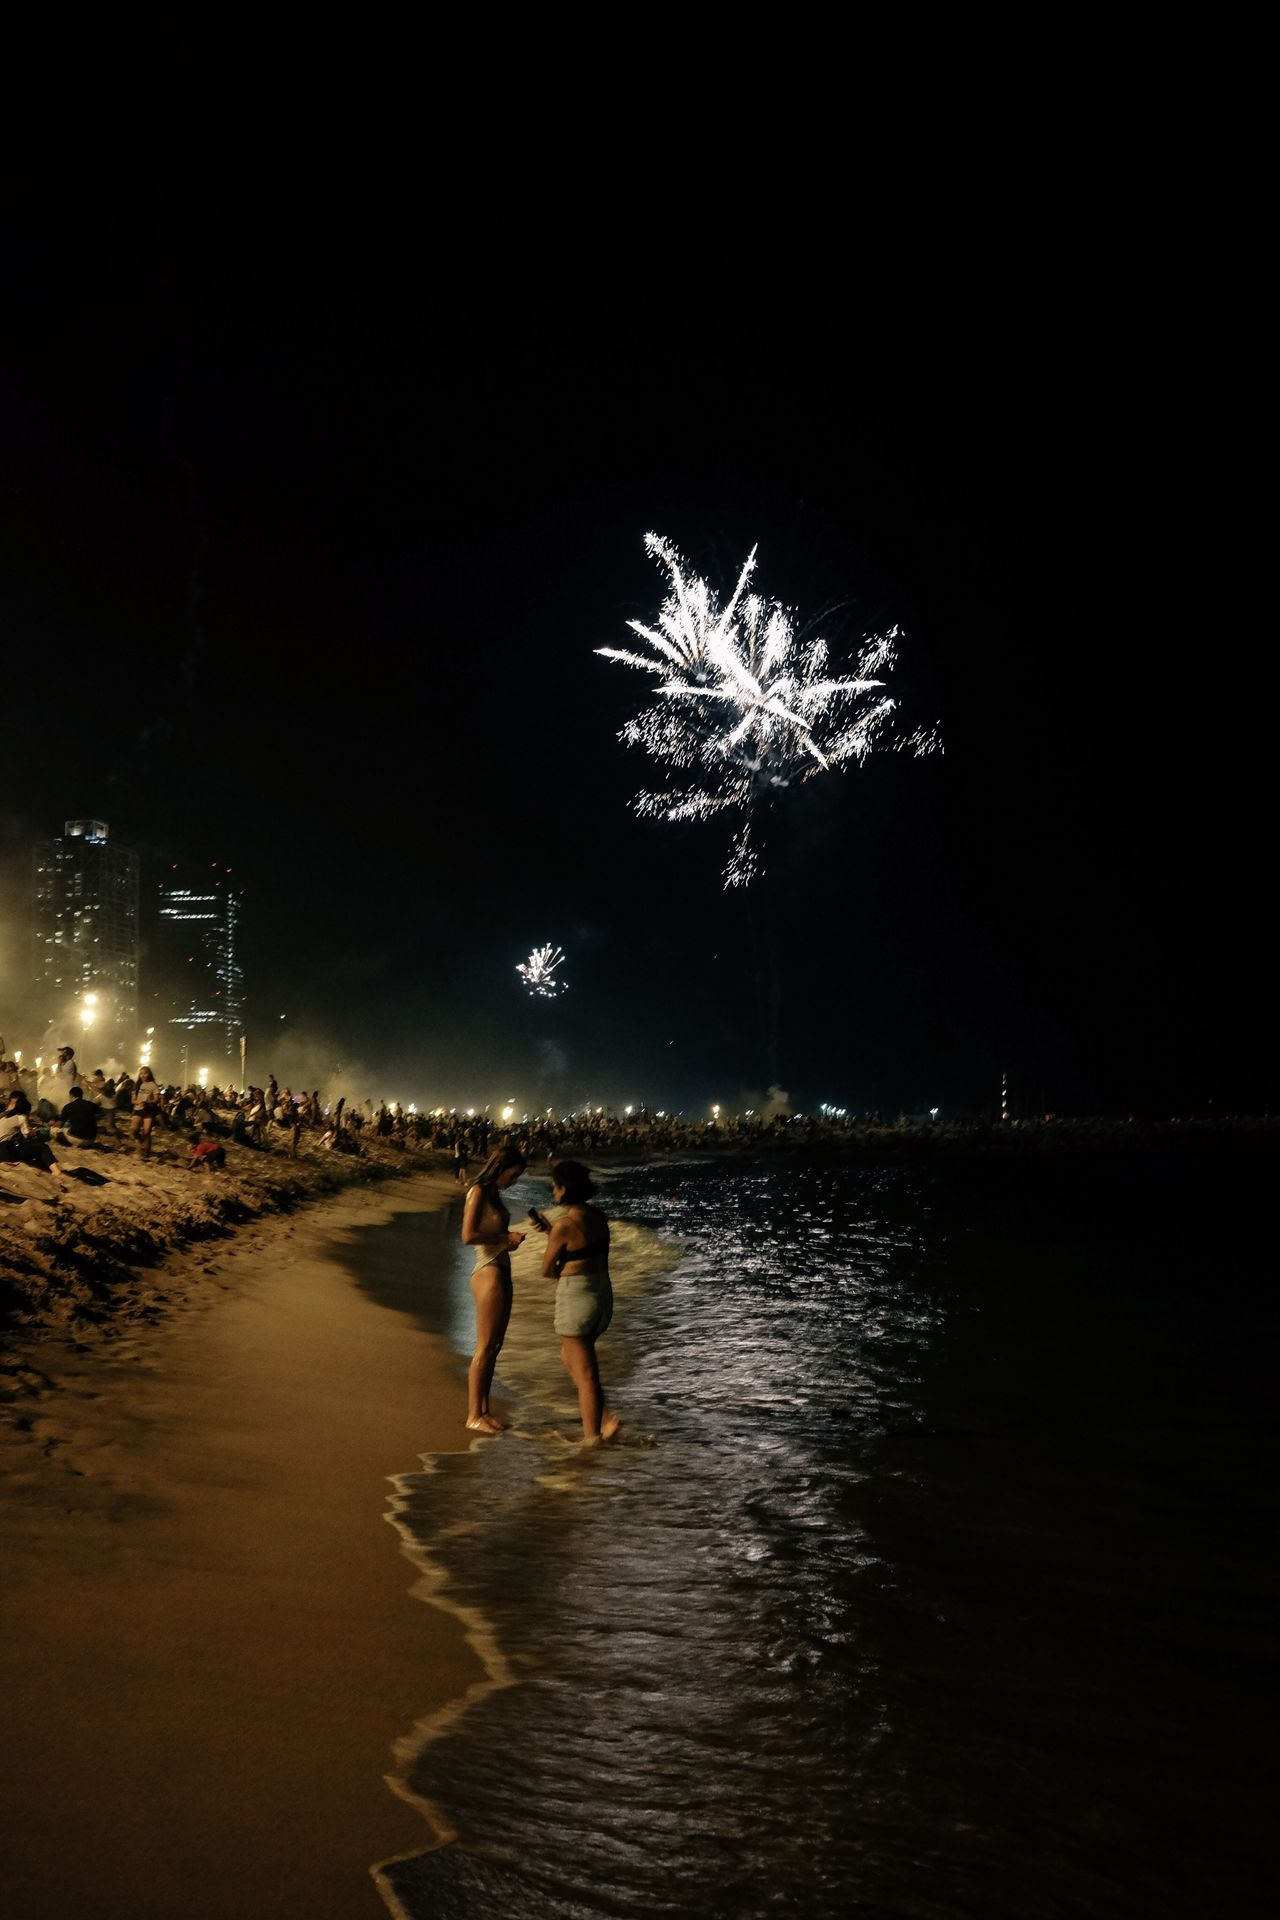 Night Illuminated Celebration Firework Display Firework - Man Made Object Vacations Full Length Real People Motion Outdoors Beach Firework Leisure Activity Men Arts Culture And Entertainment Lifestyles Water Women Tree Building Exterior Girls Beachphotography Beach